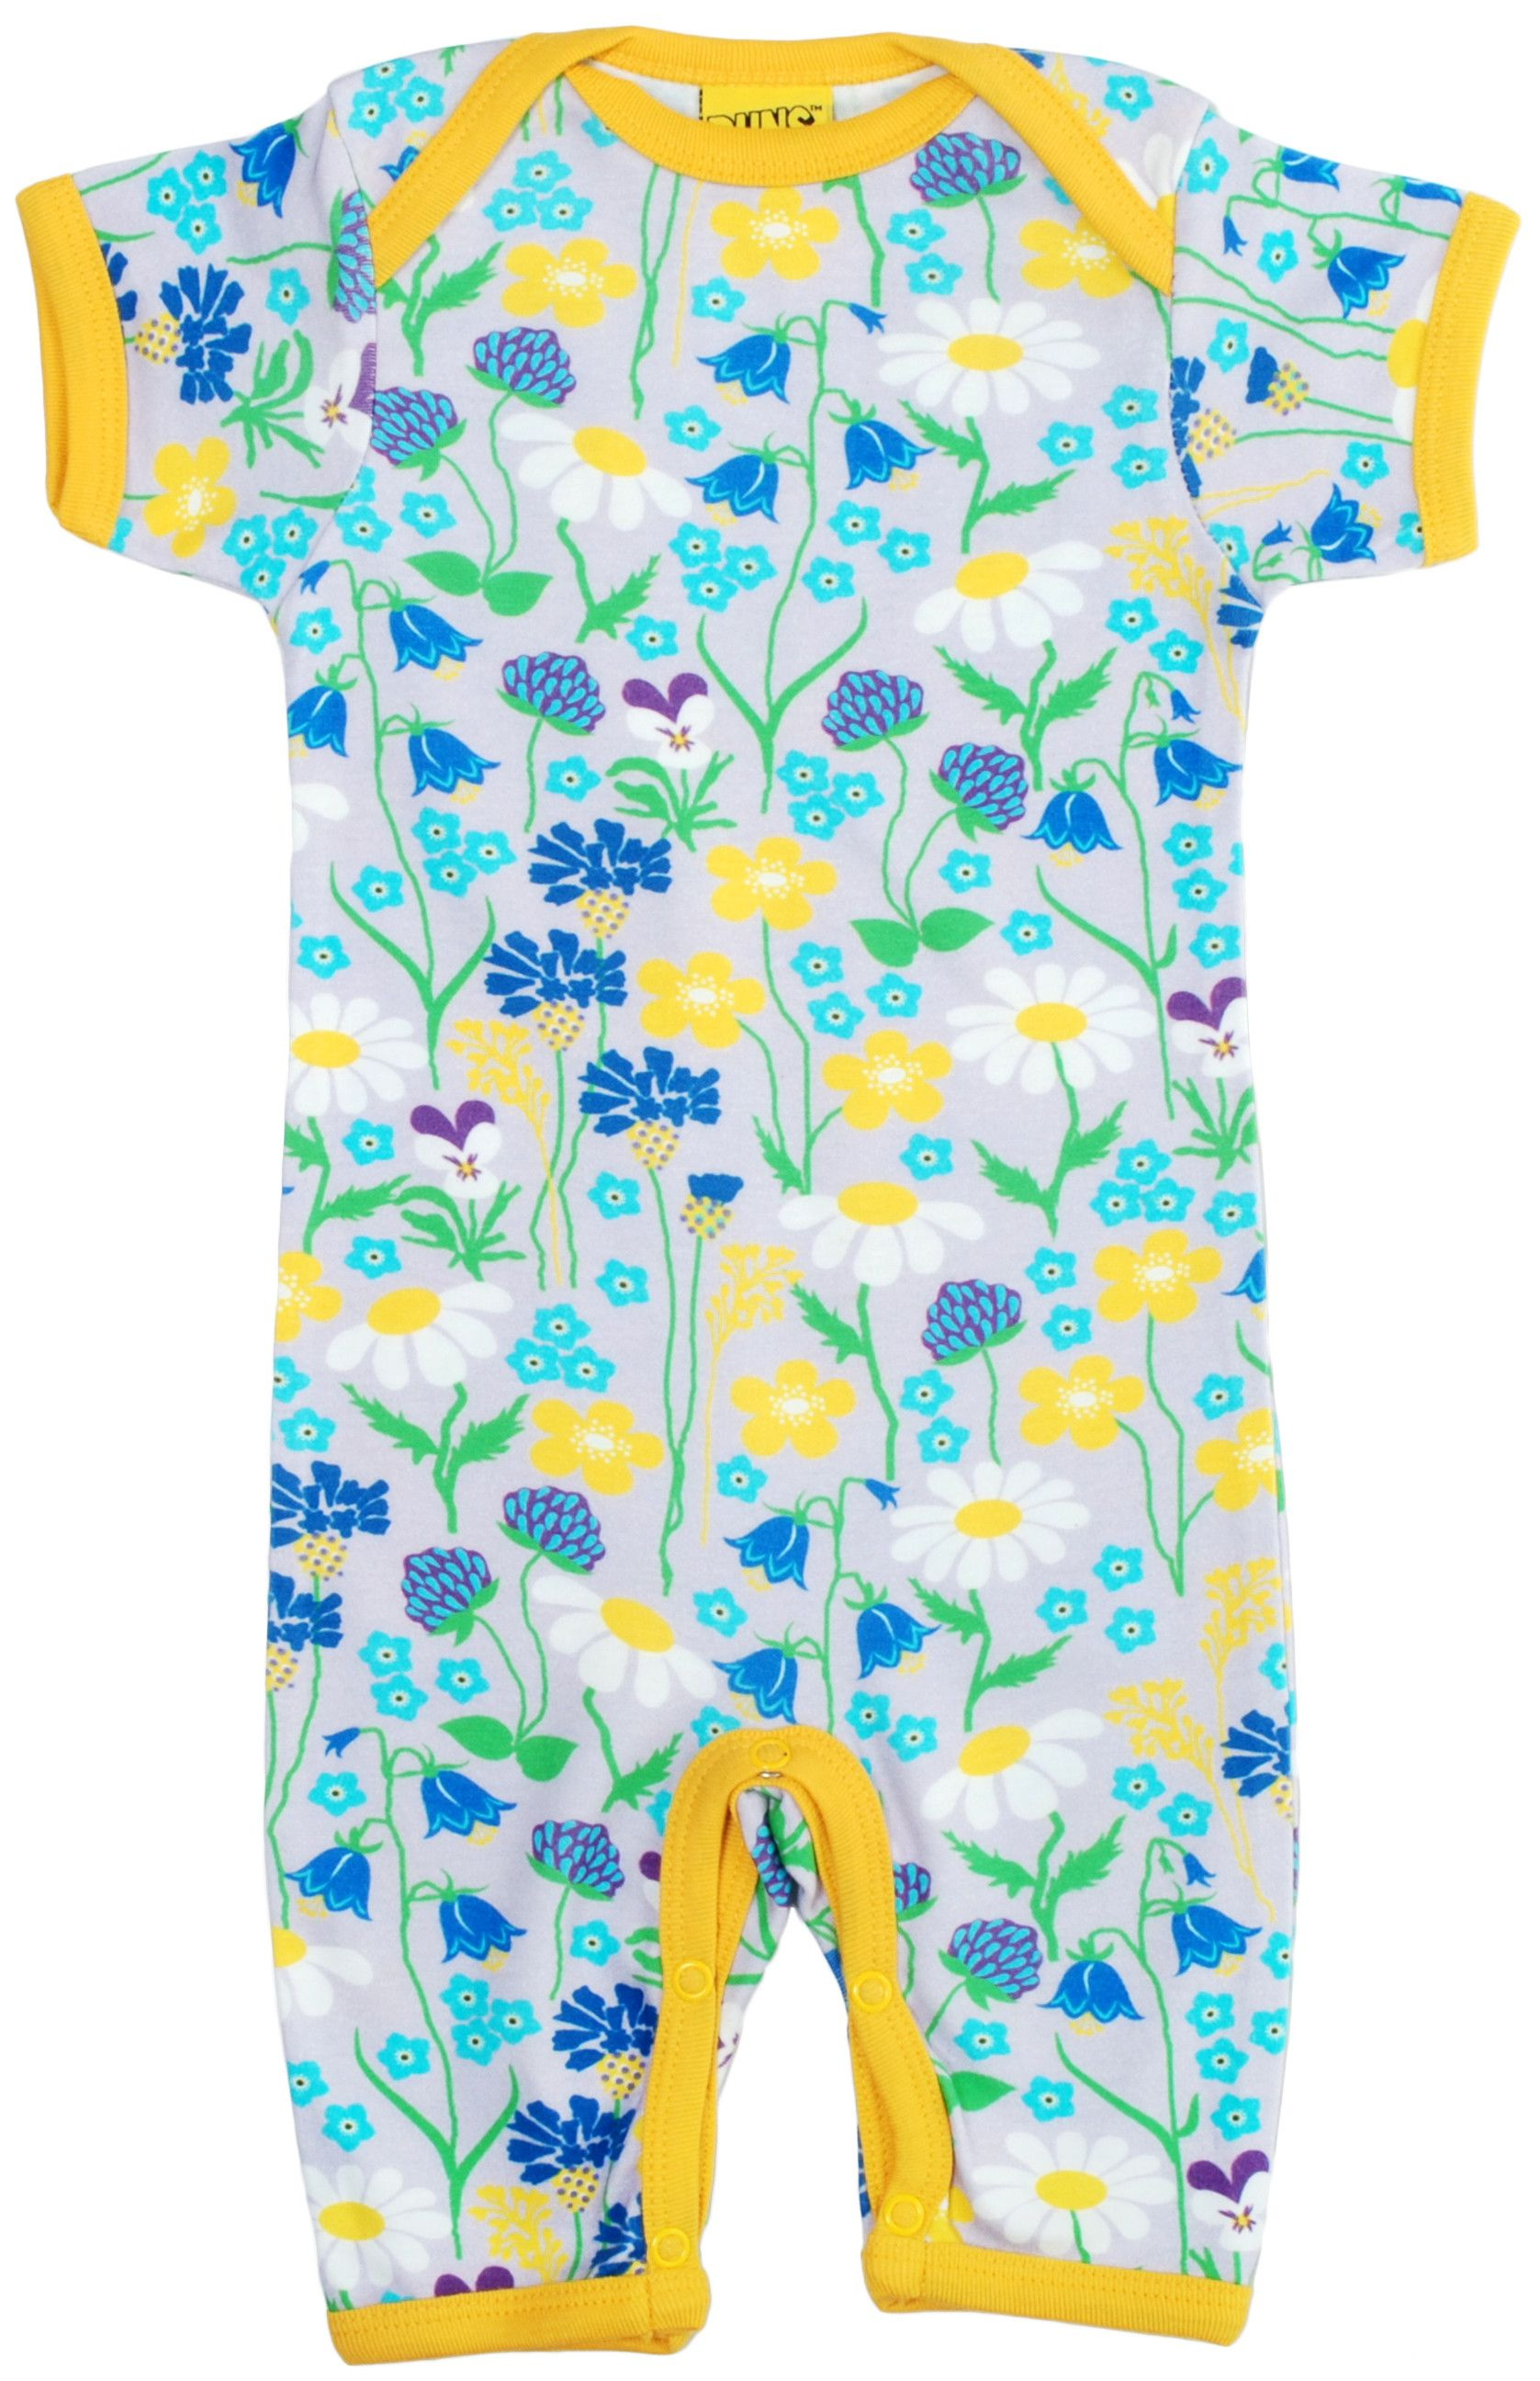 7dae1509 Midsummer Flowers in Purple Organic Cotton Summer Suit. From DUNS Sweden,  offered by Modern Rascals.